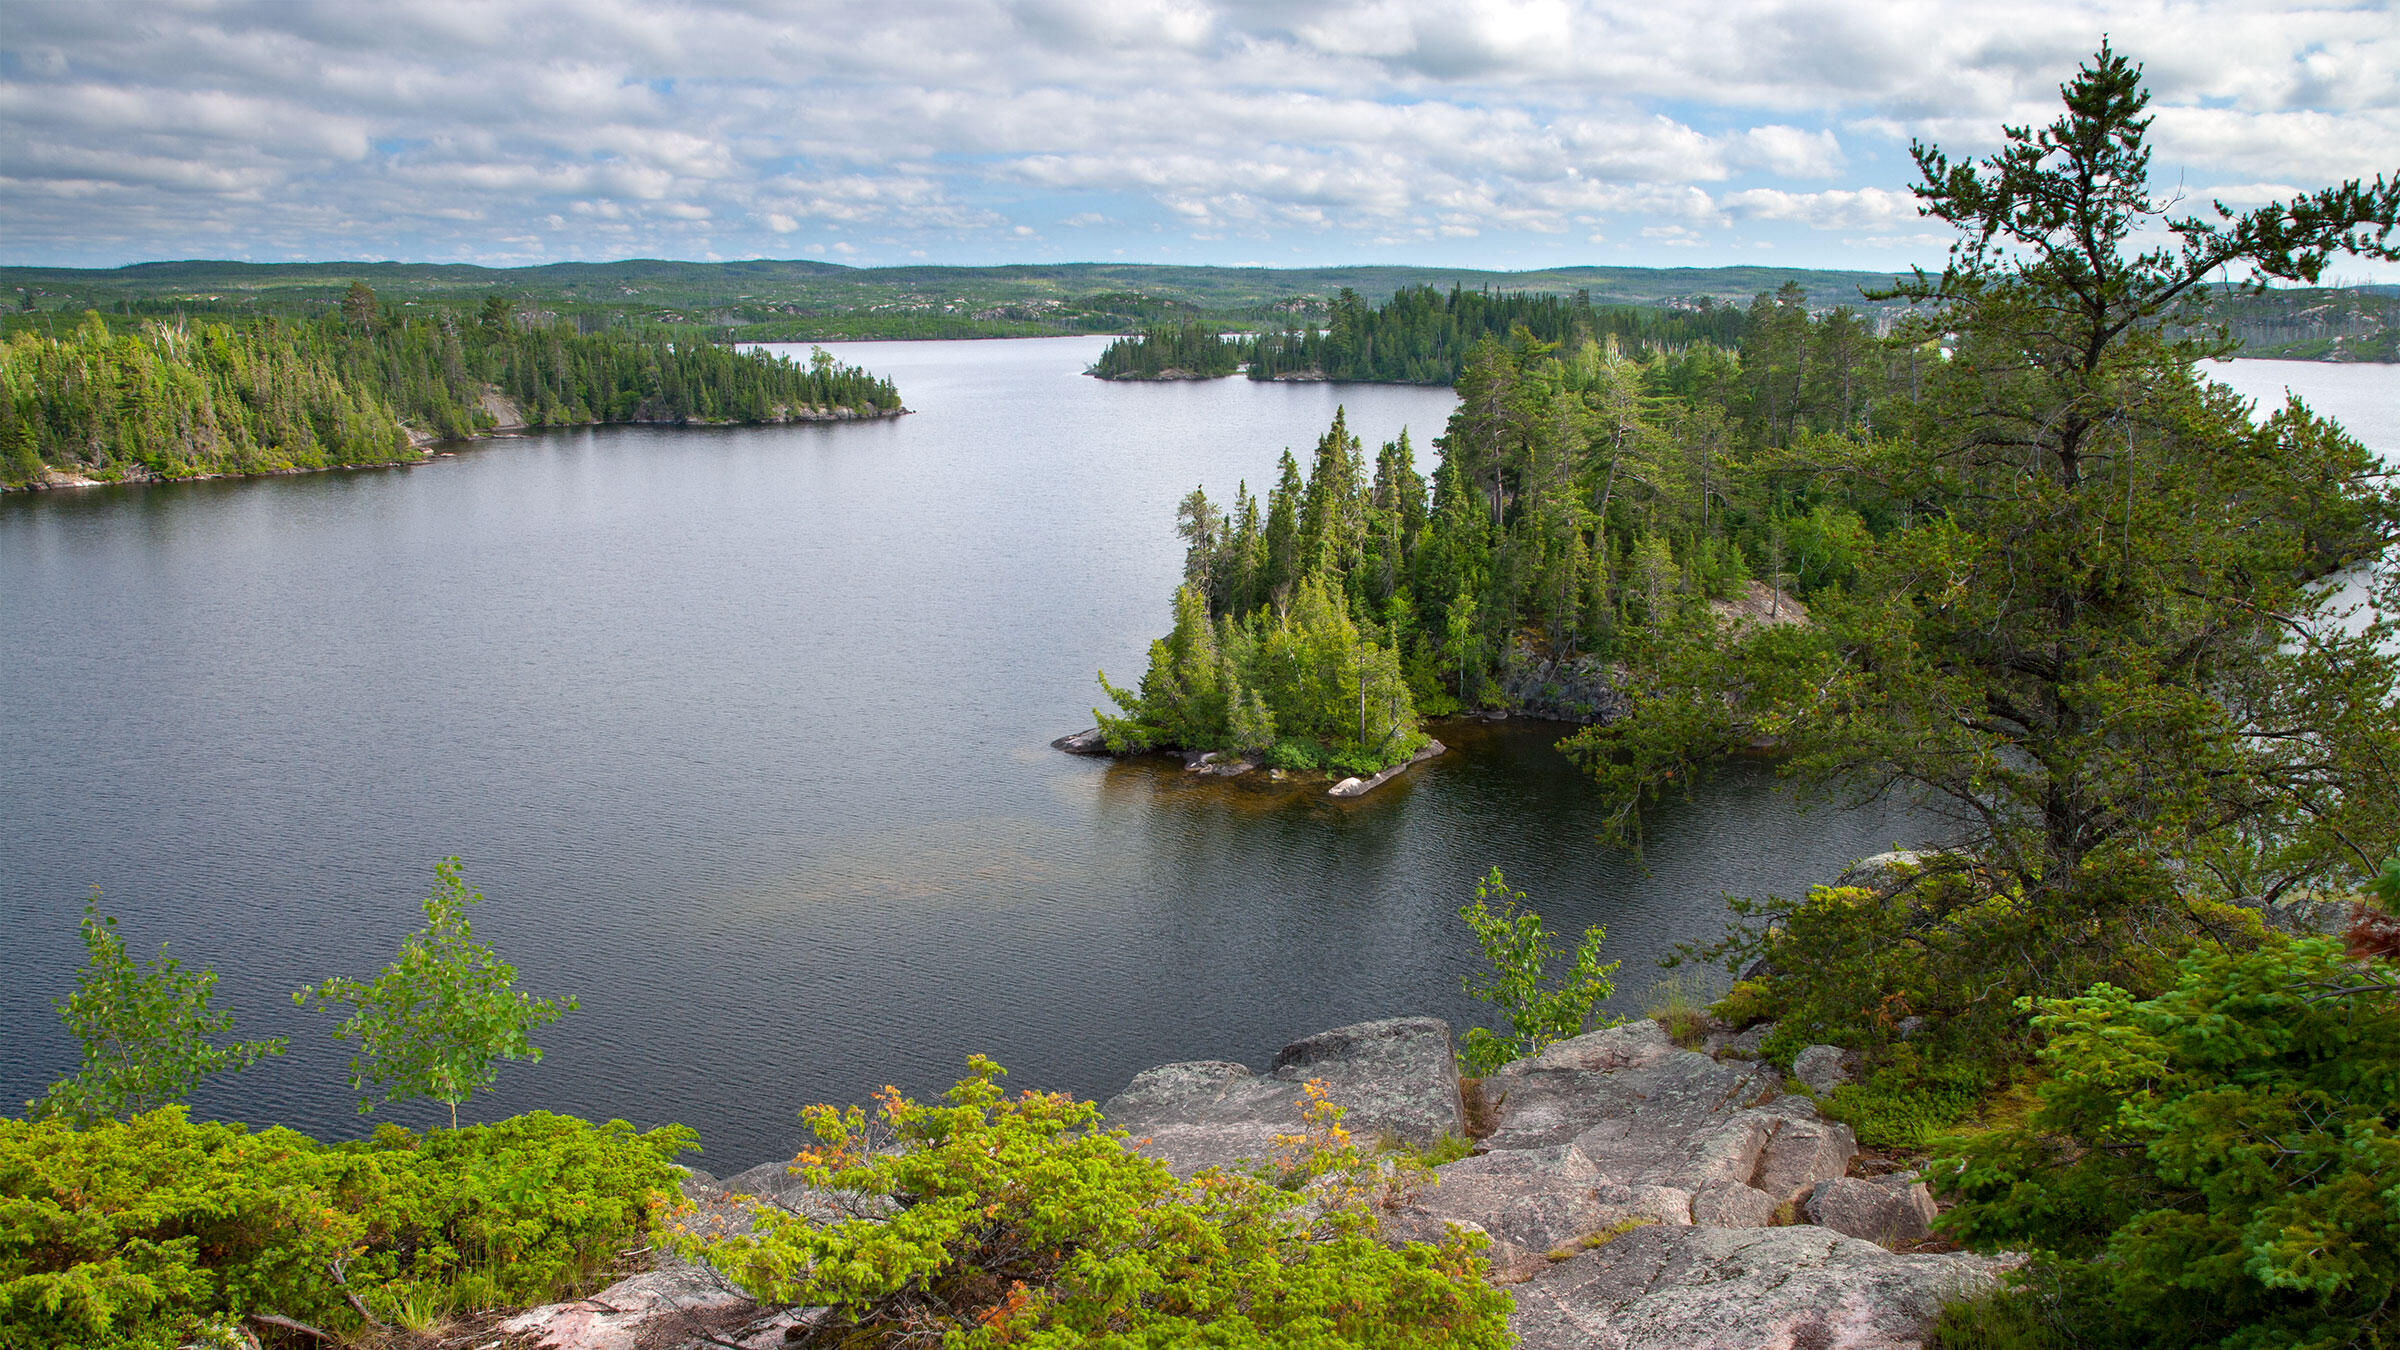 Boundary Waters Canoe Area Wilderness, Superior National Forest, Minnesota. Clint Farlinger/Alamy